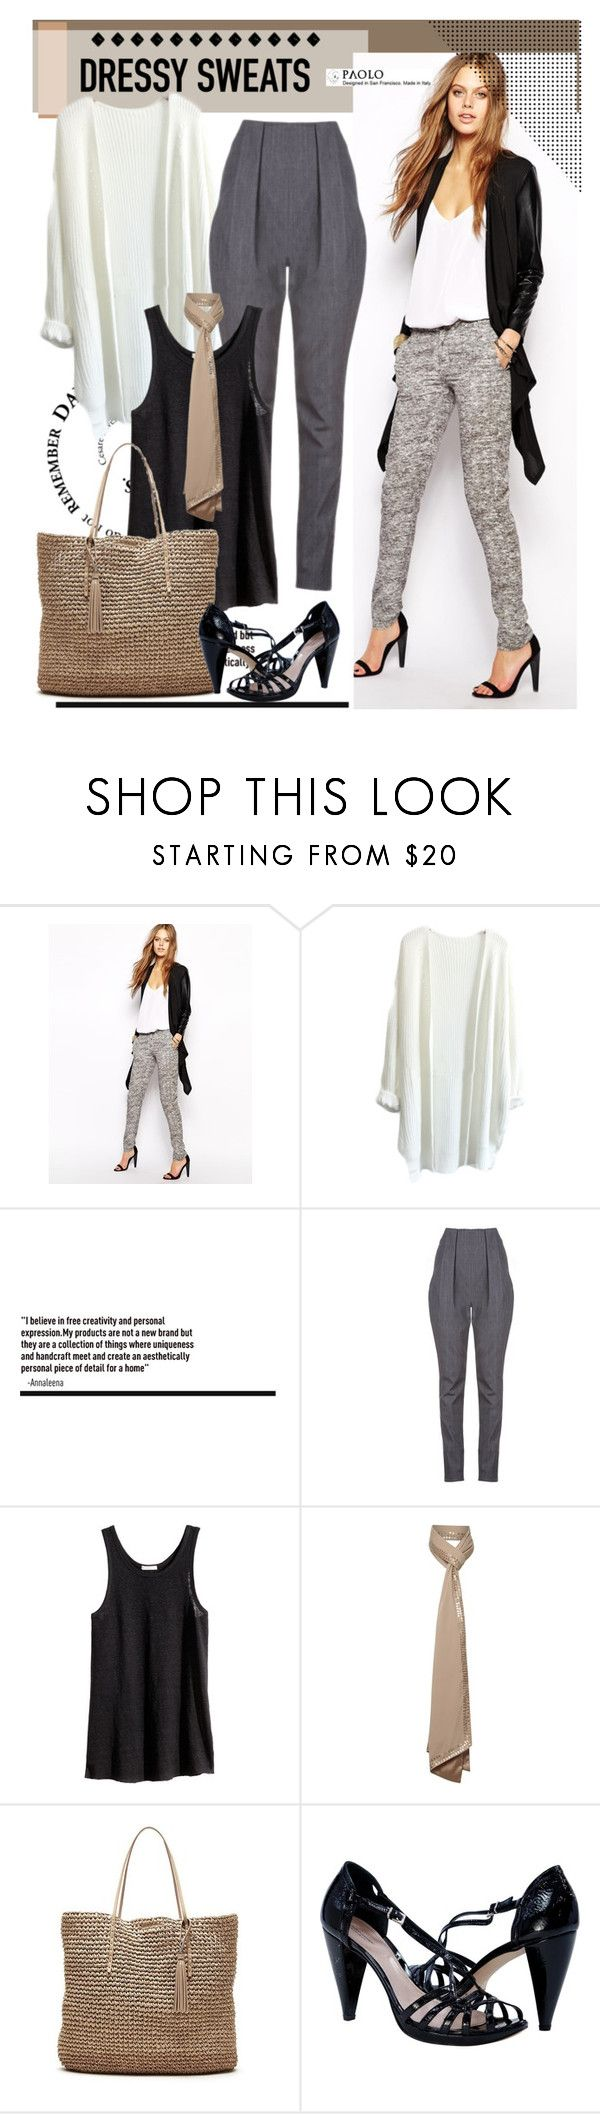 """""""Fashionable Sweatpants"""" by spenderellastyle ❤ liked on Polyvore featuring SuperTrash, TheP., H&M, Untold, Banana Republic and stylishsweats"""